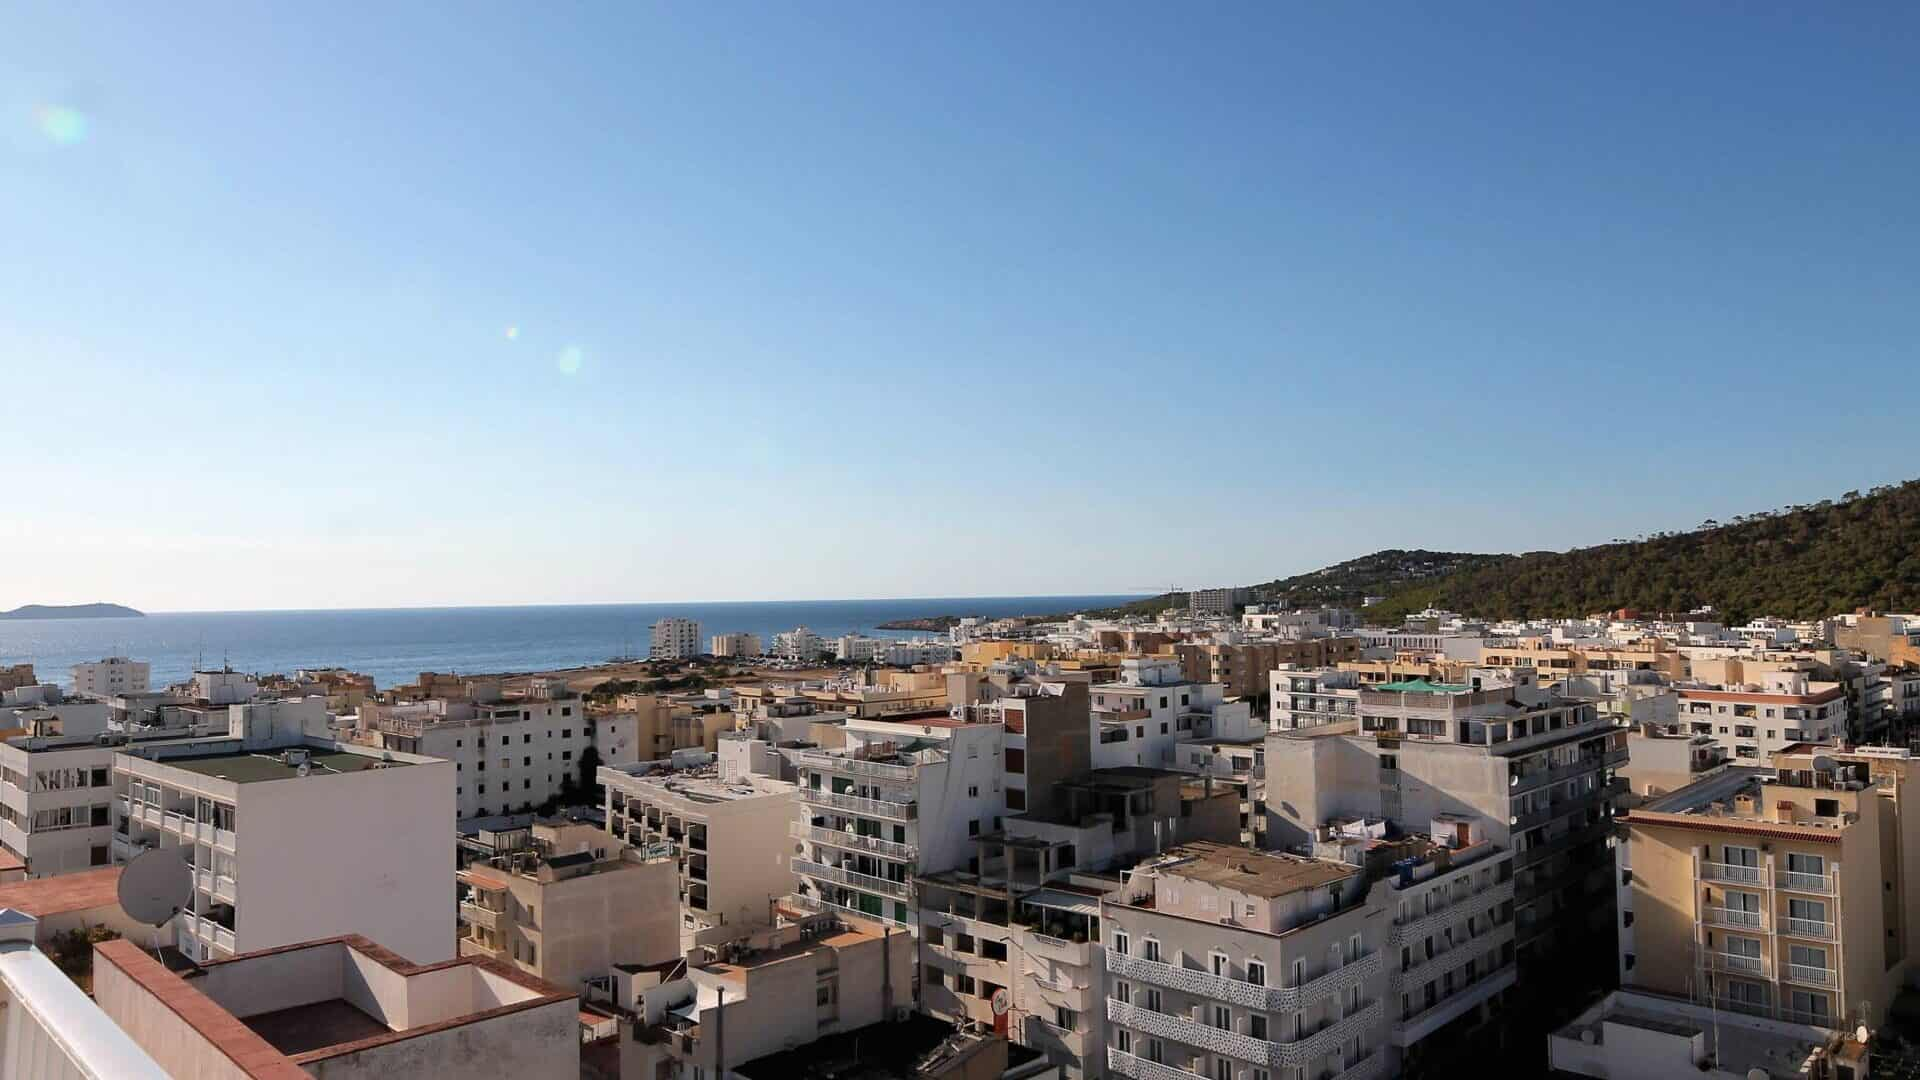 San Antonio 2 bedroom apartment for sale with lovely harbor views